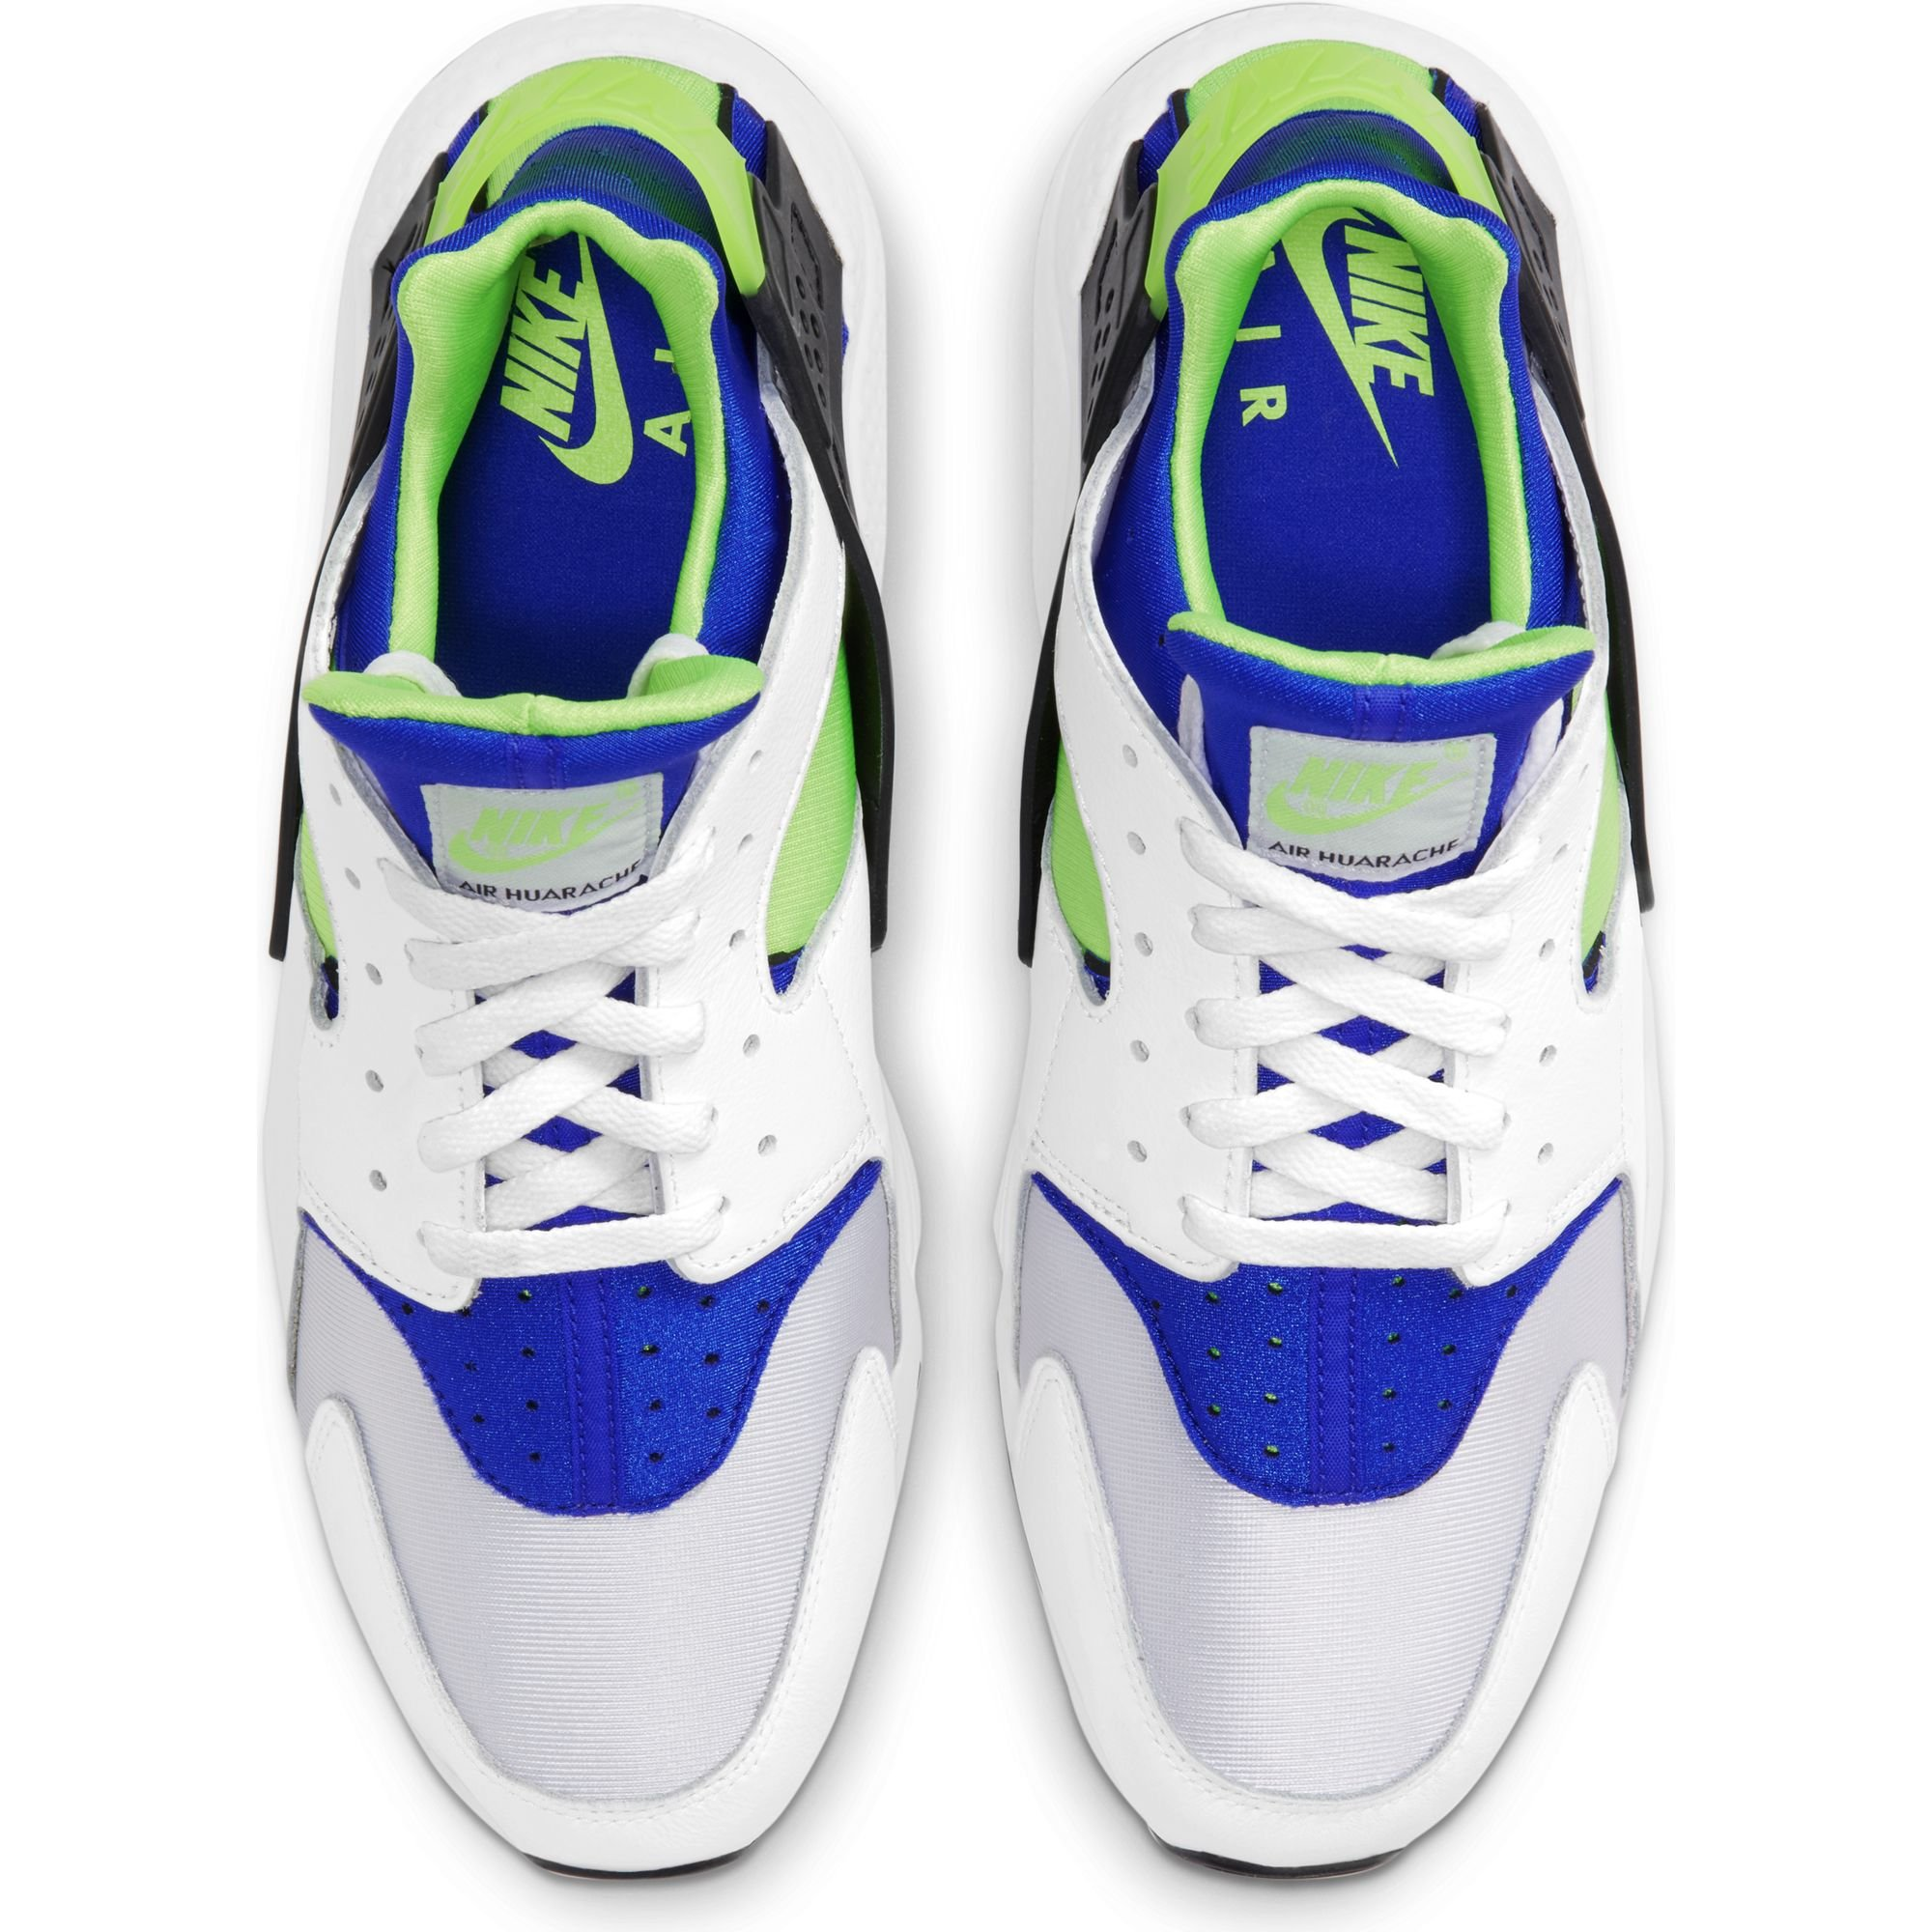 nike air huarache white scream green royal blue